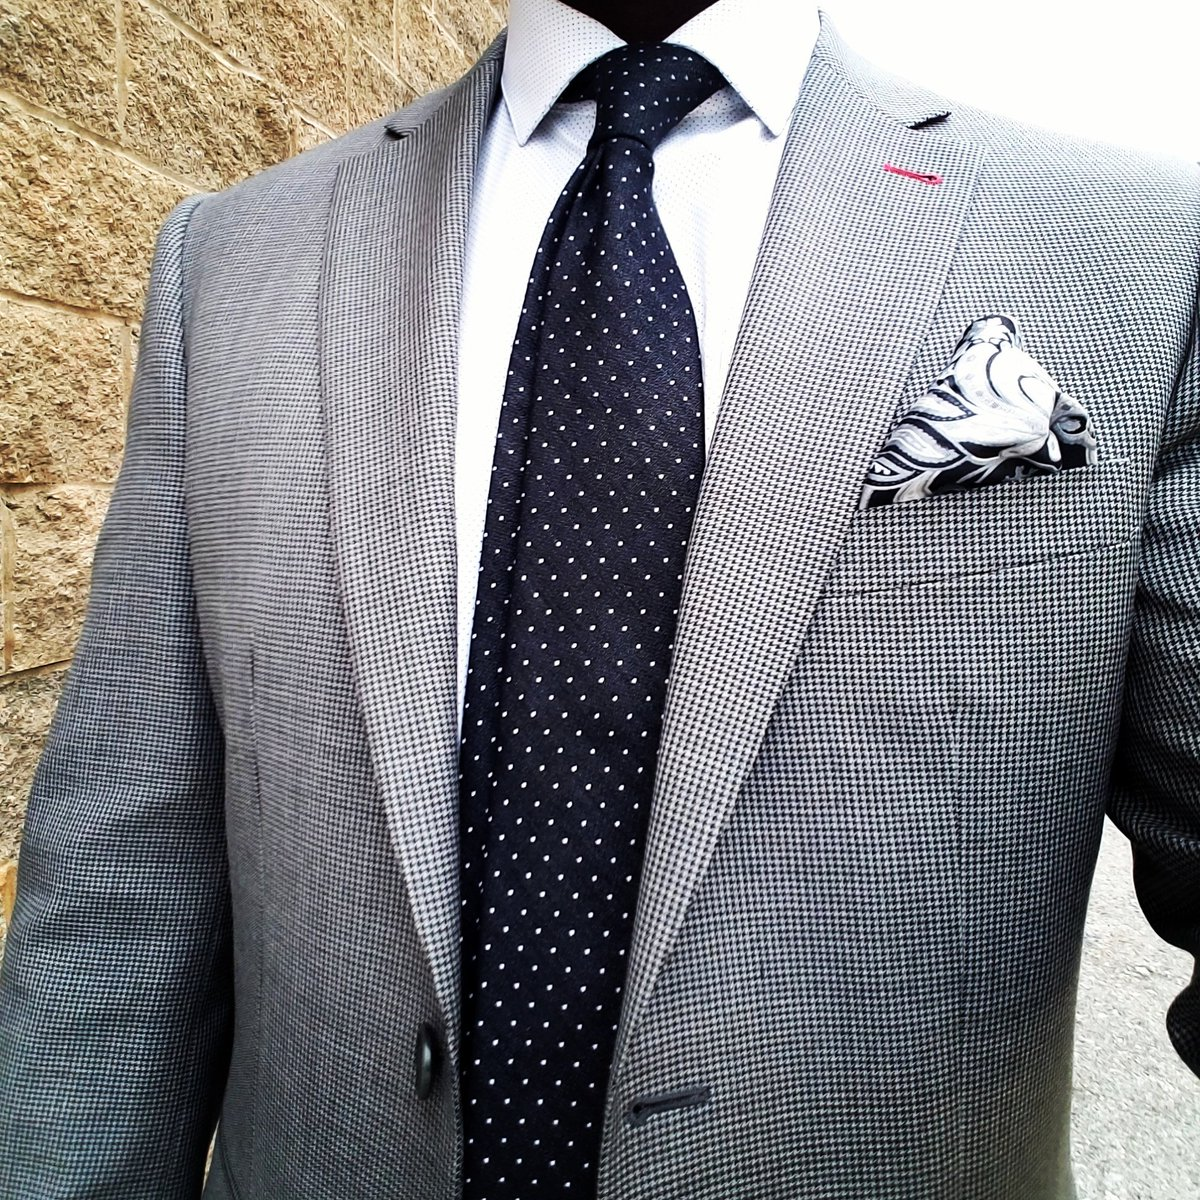 I love this look, but unfortunately I hate to wear the same look twice.. #JoebyJosephAddoud #custom #Menwithstyle #mensfashion #menssuits<br>http://pic.twitter.com/DMA82P7awF